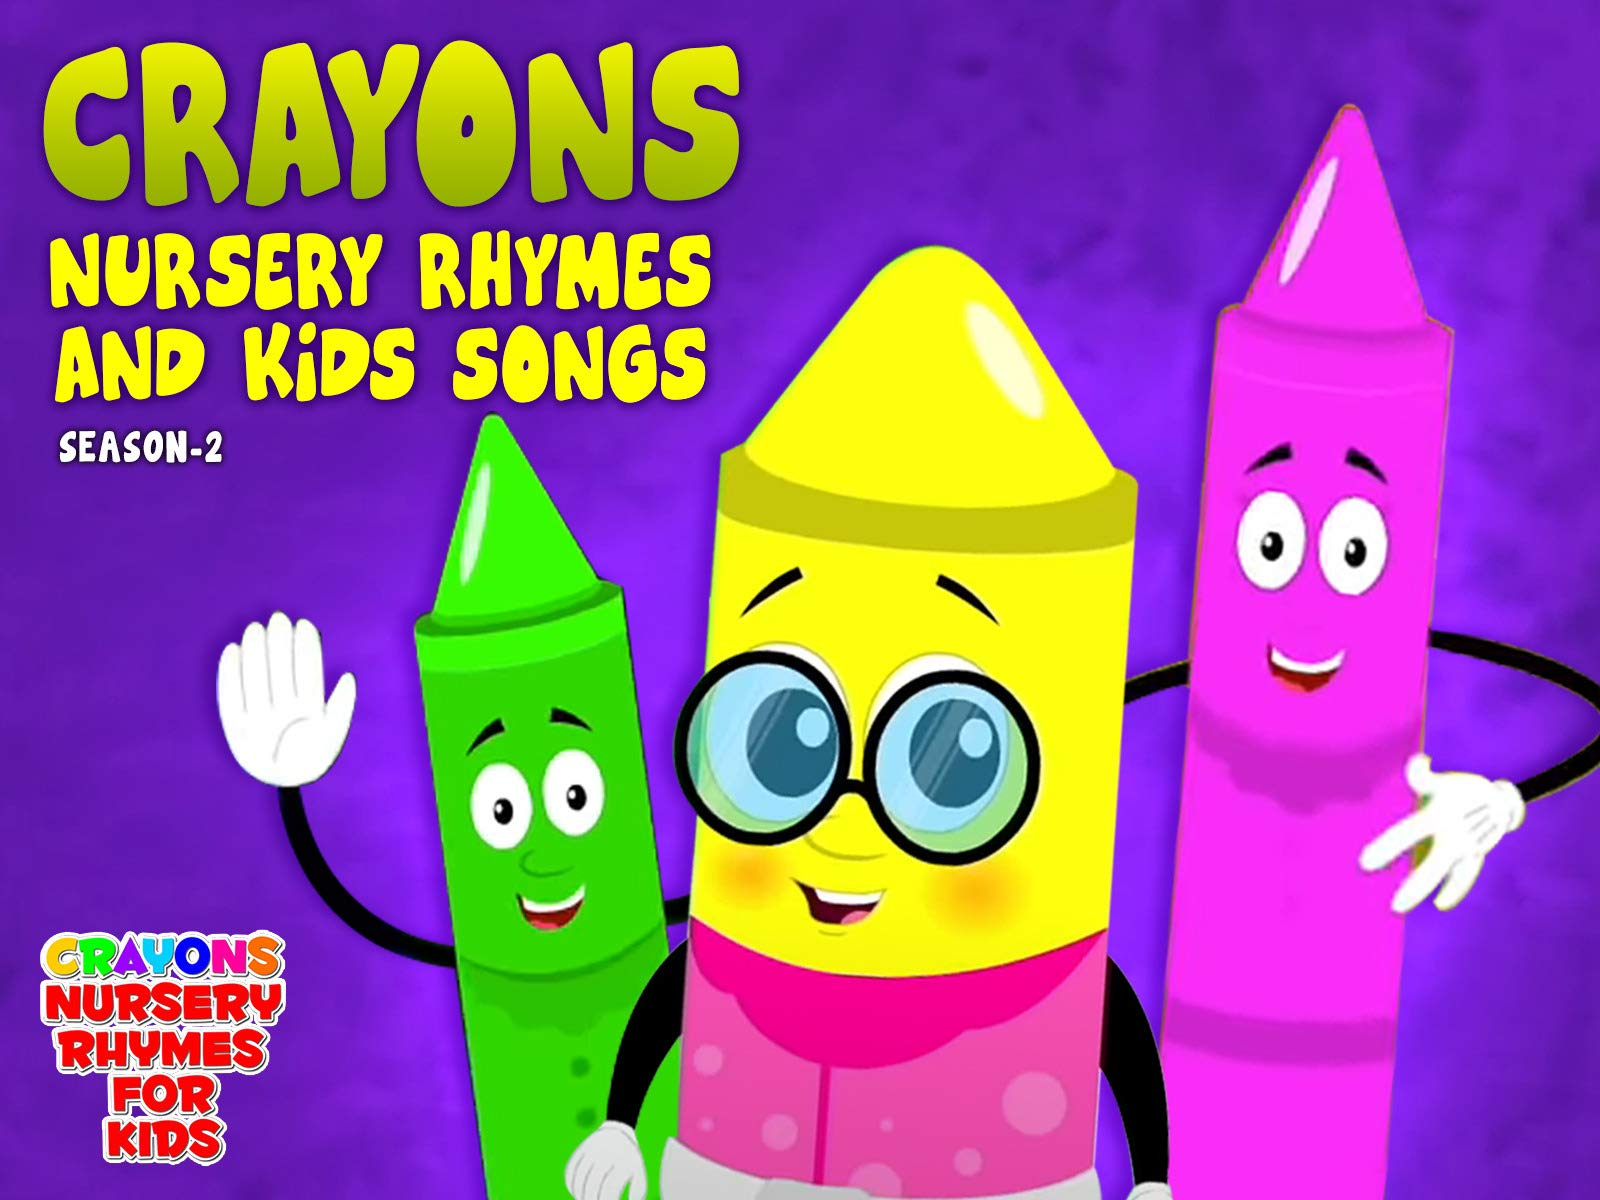 Crayons Nursery Rhymes & Kids Songs - Season 2